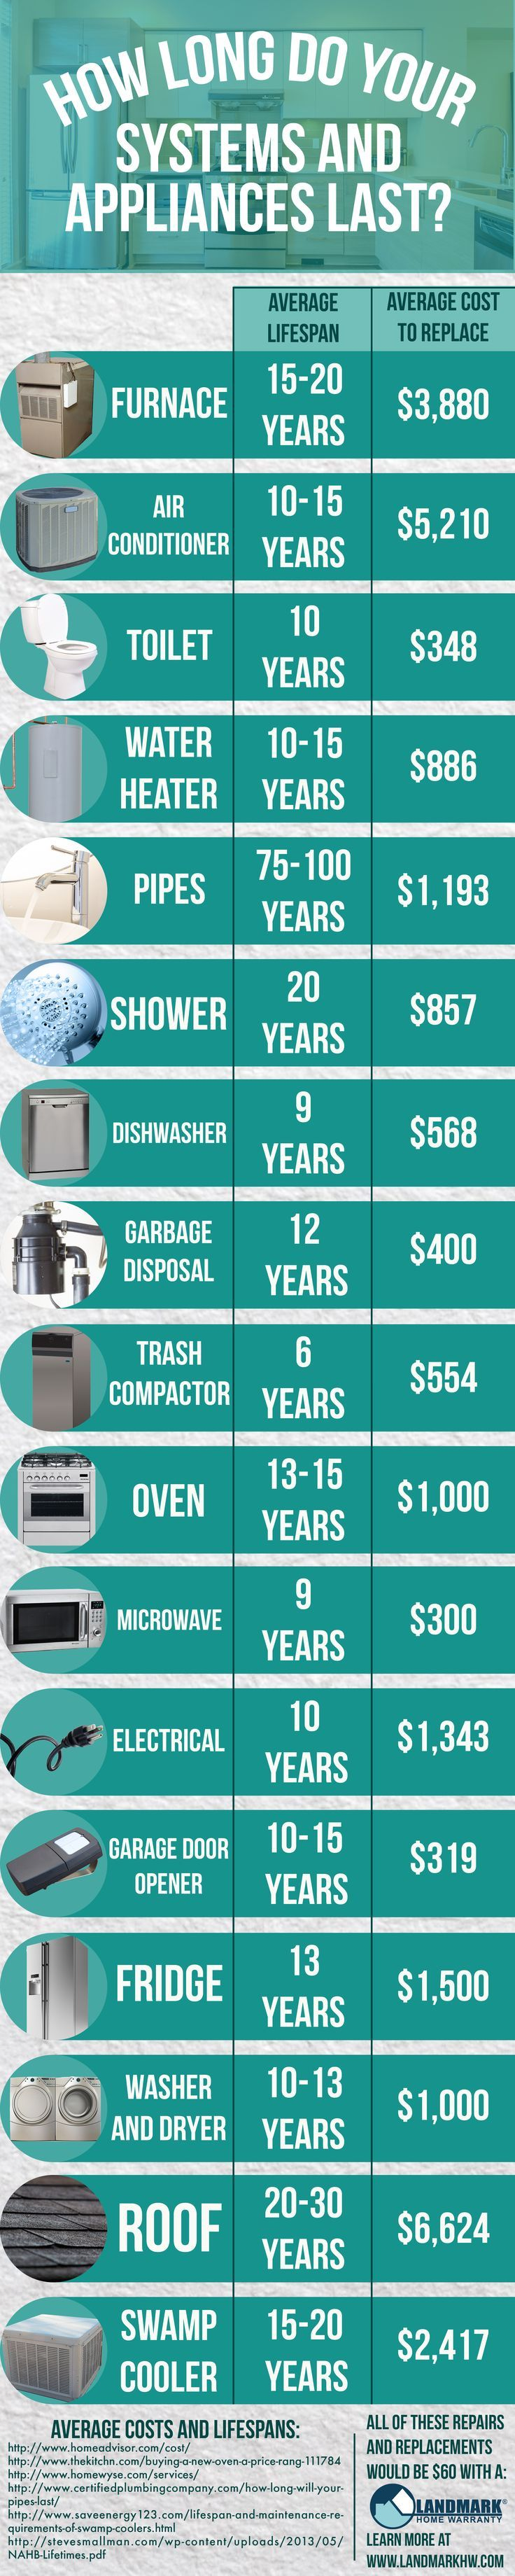 cool How Long Do Your Home's Systems and Appliances Last?